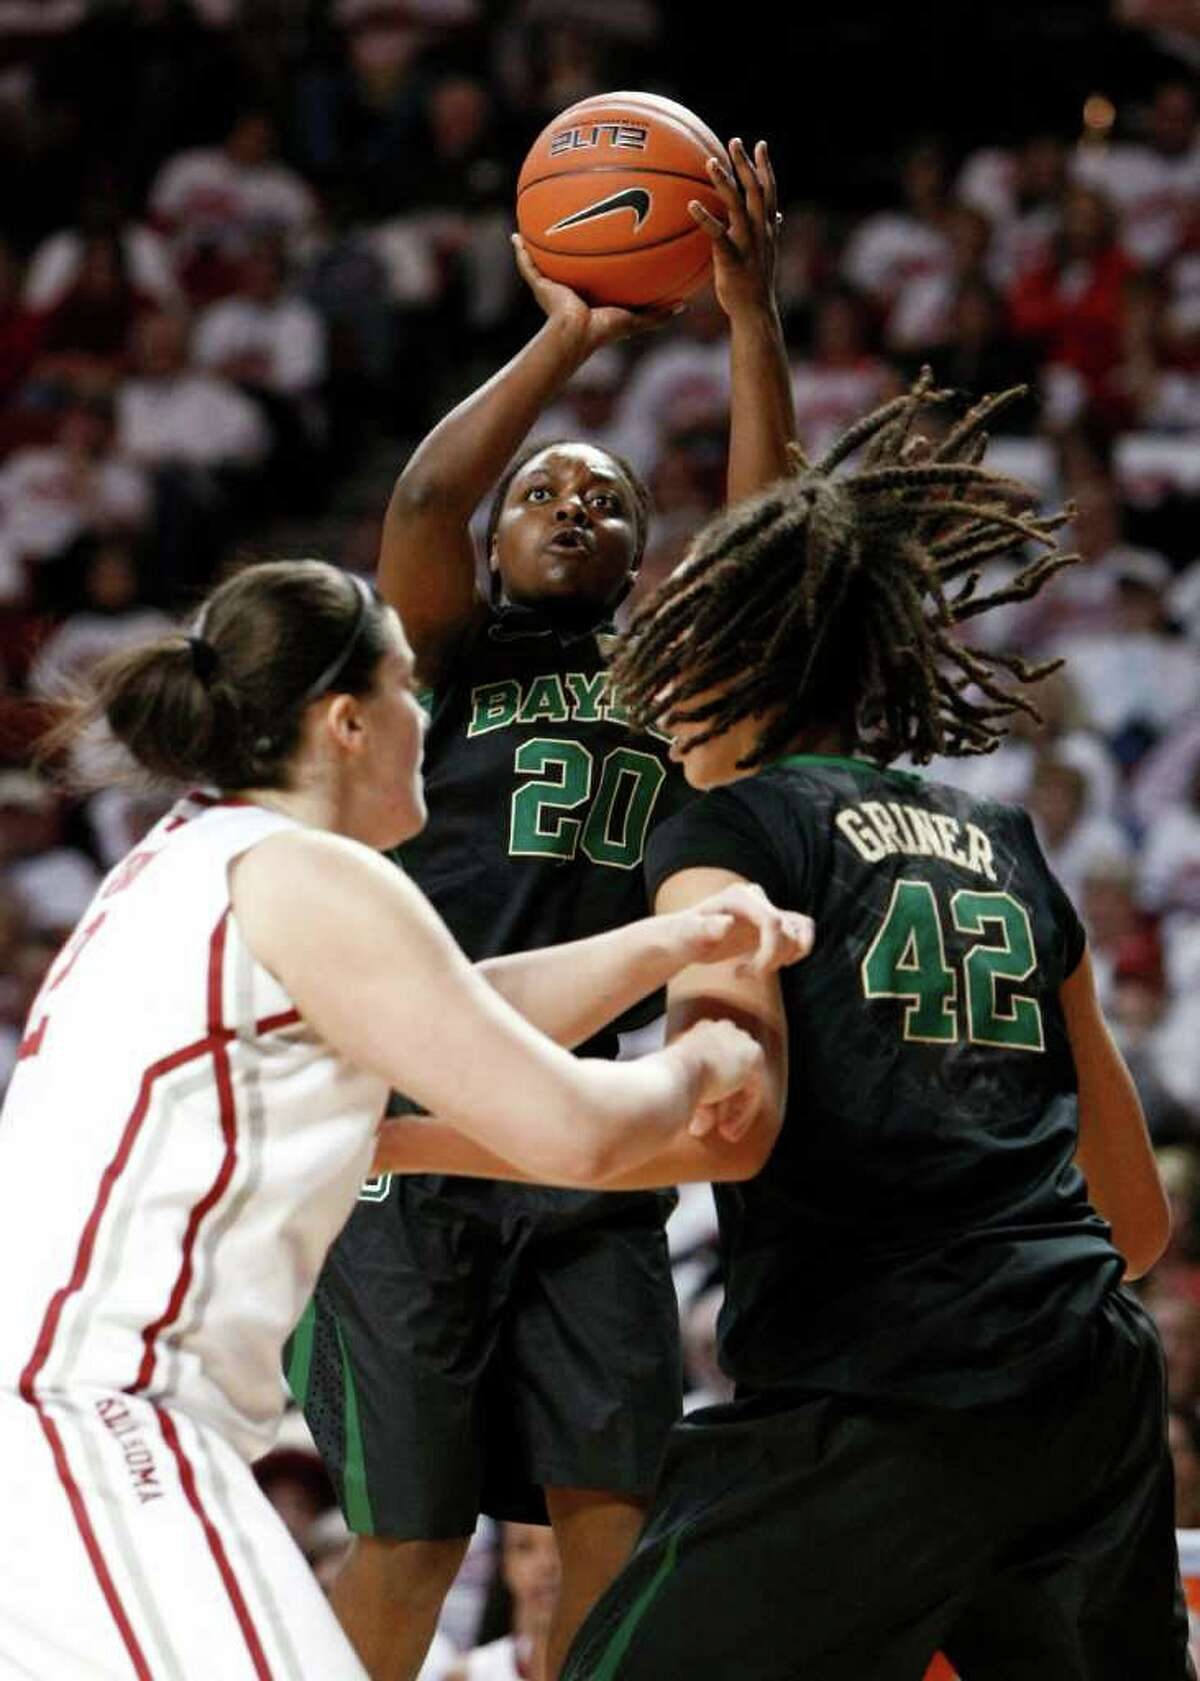 Baylor's Terran Condrey (middle), who had 14 points, gets room to fire off a jumper in the first half Thursday.